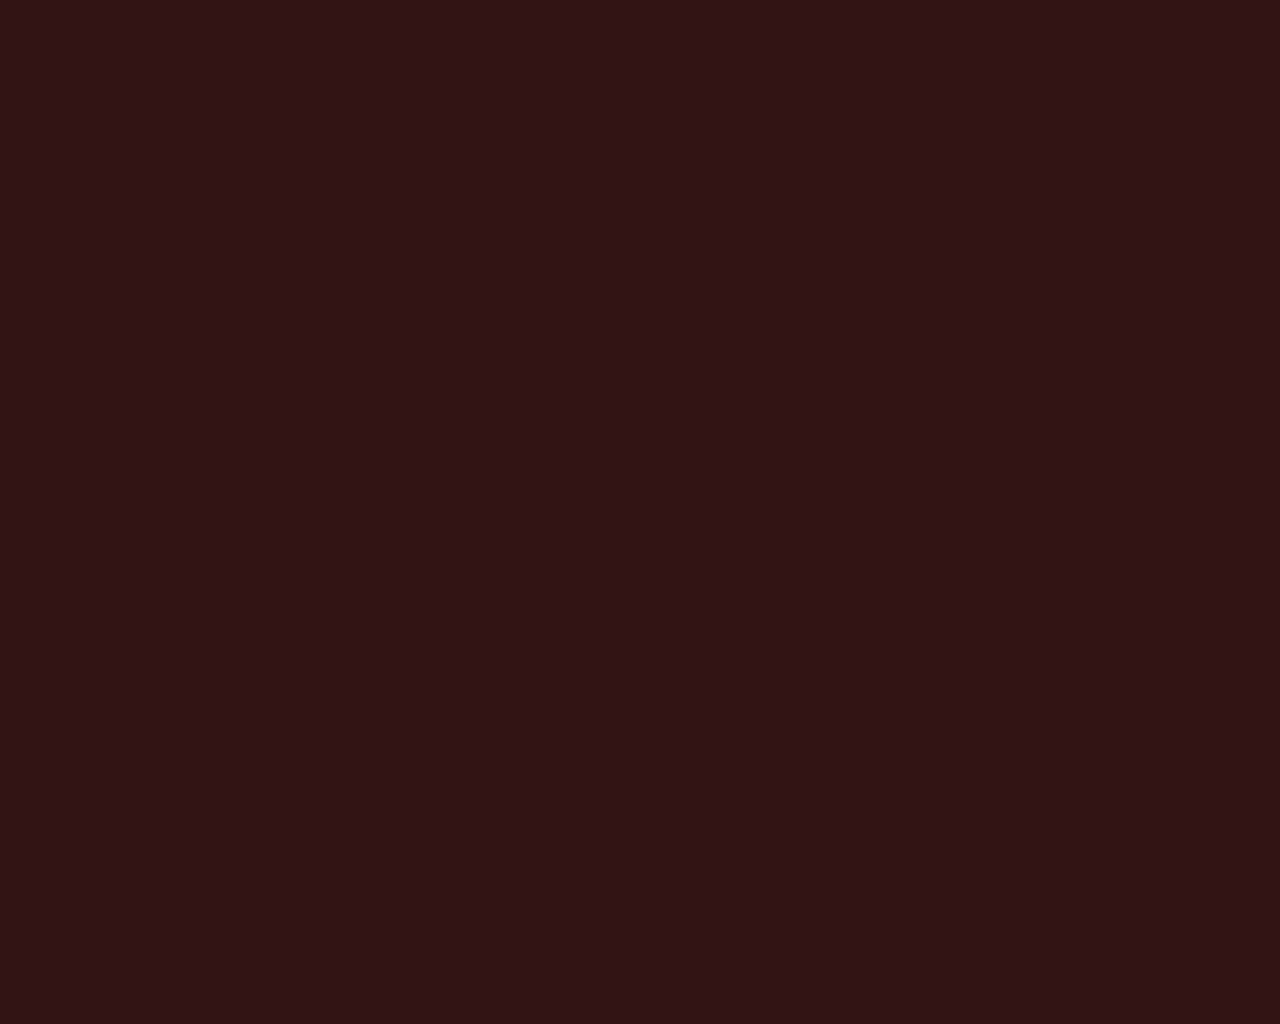 1280x1024 Seal Brown Solid Color Background